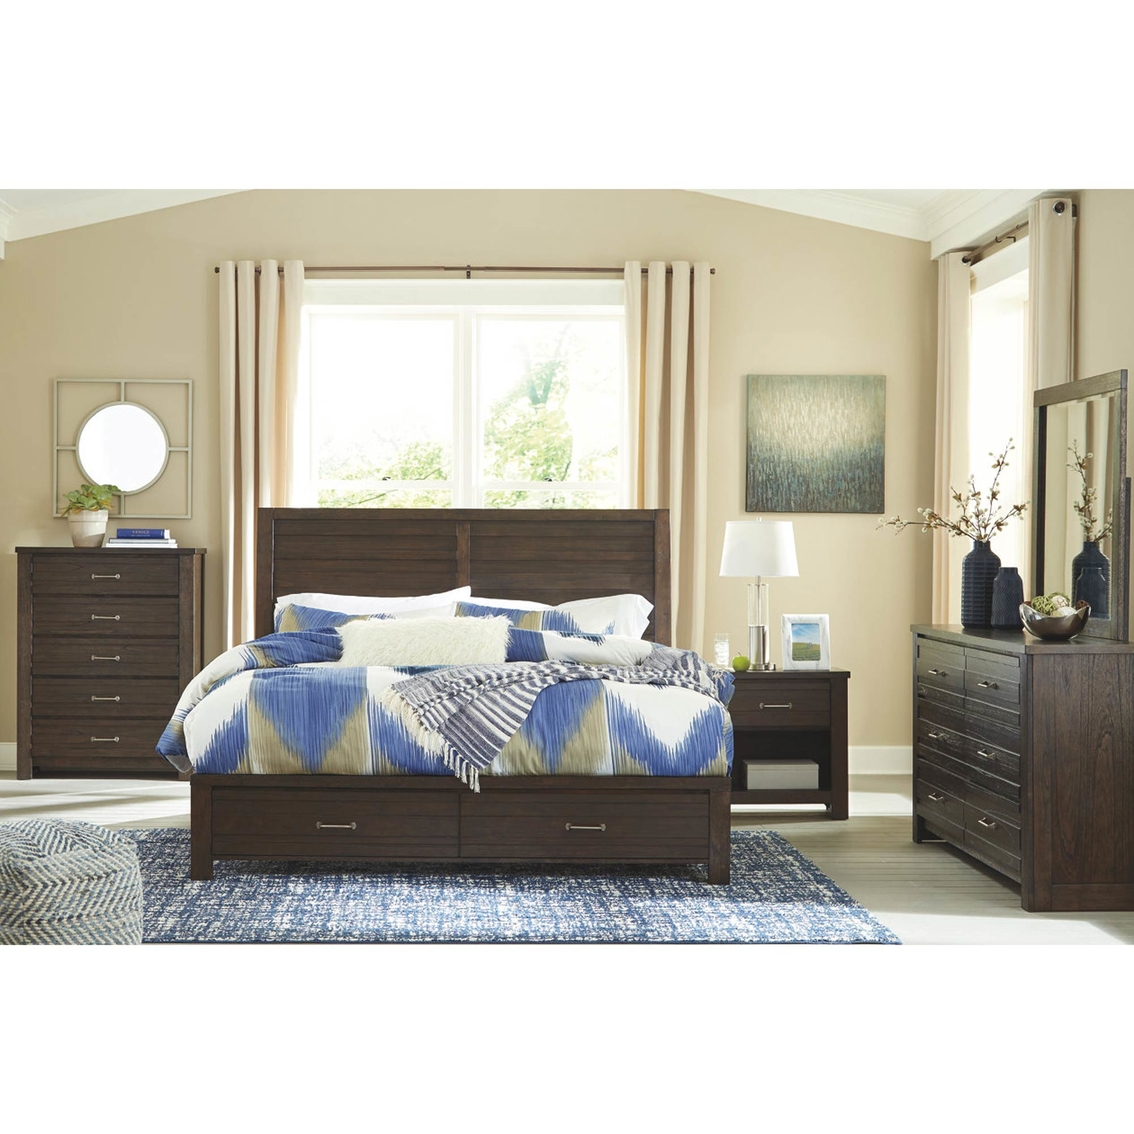 Signature Design By Ashley Darbry Storage Bed 4 Pc Set Bedroom Sets Furniture Appliances Shop The Exchange